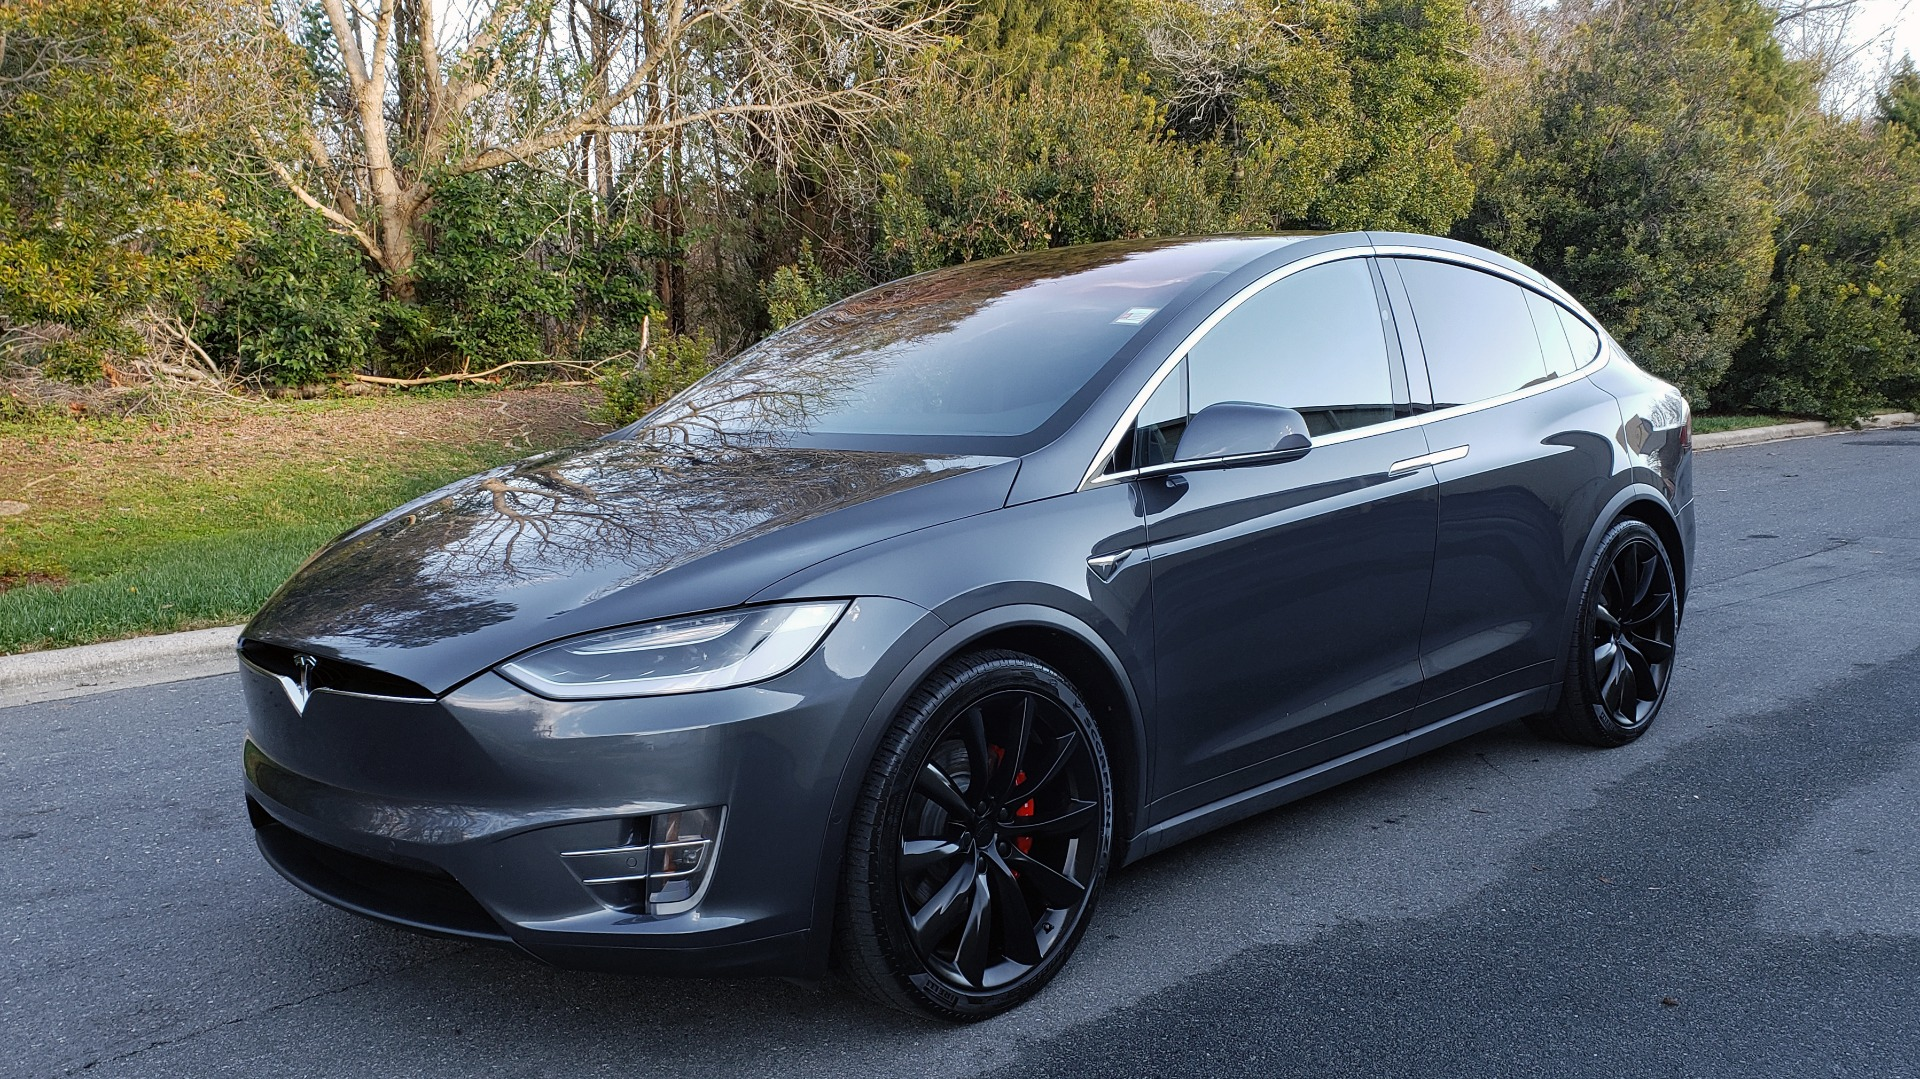 Used 2016 Tesla MODEL X P100D LUDICROUS PERF / PREM / TECH / AUTO PILOT / TOWING for sale Sold at Formula Imports in Charlotte NC 28227 1